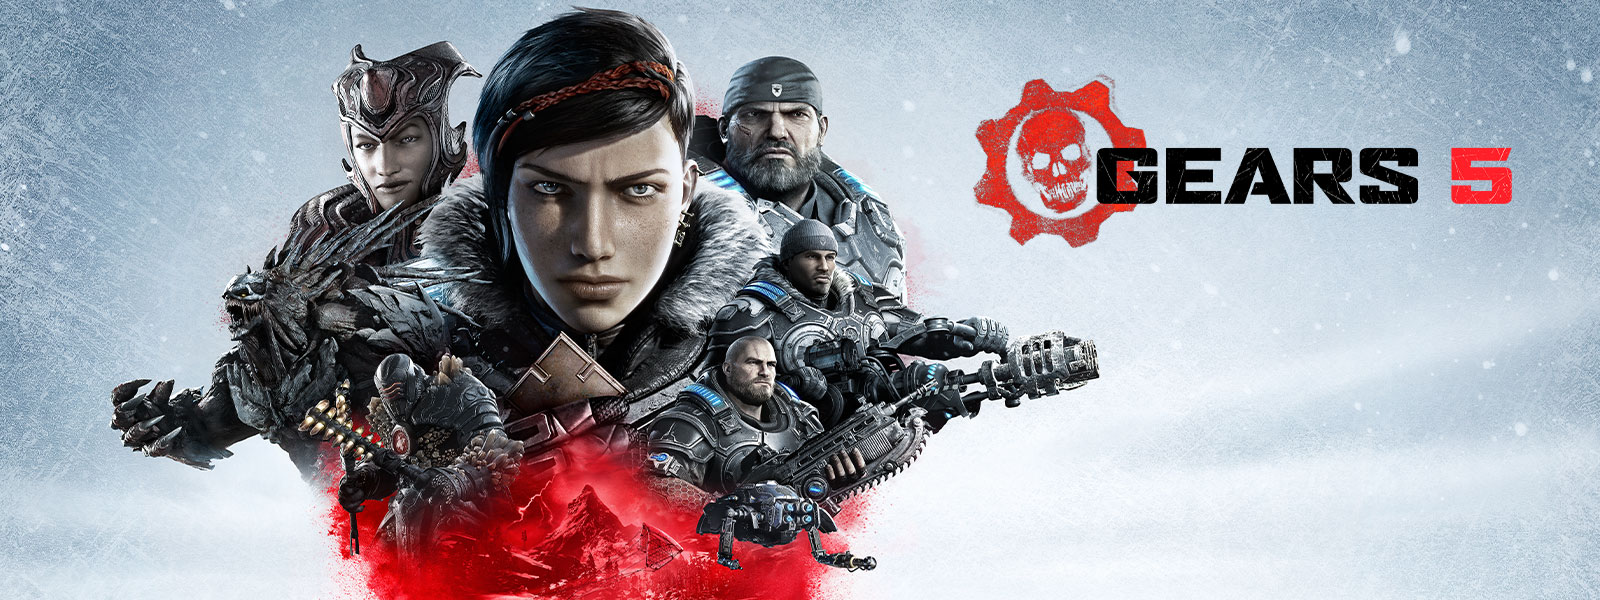 Gears 5 logo and headshot of Kait Diaz in between her enemies and teammates over a snow weathered background